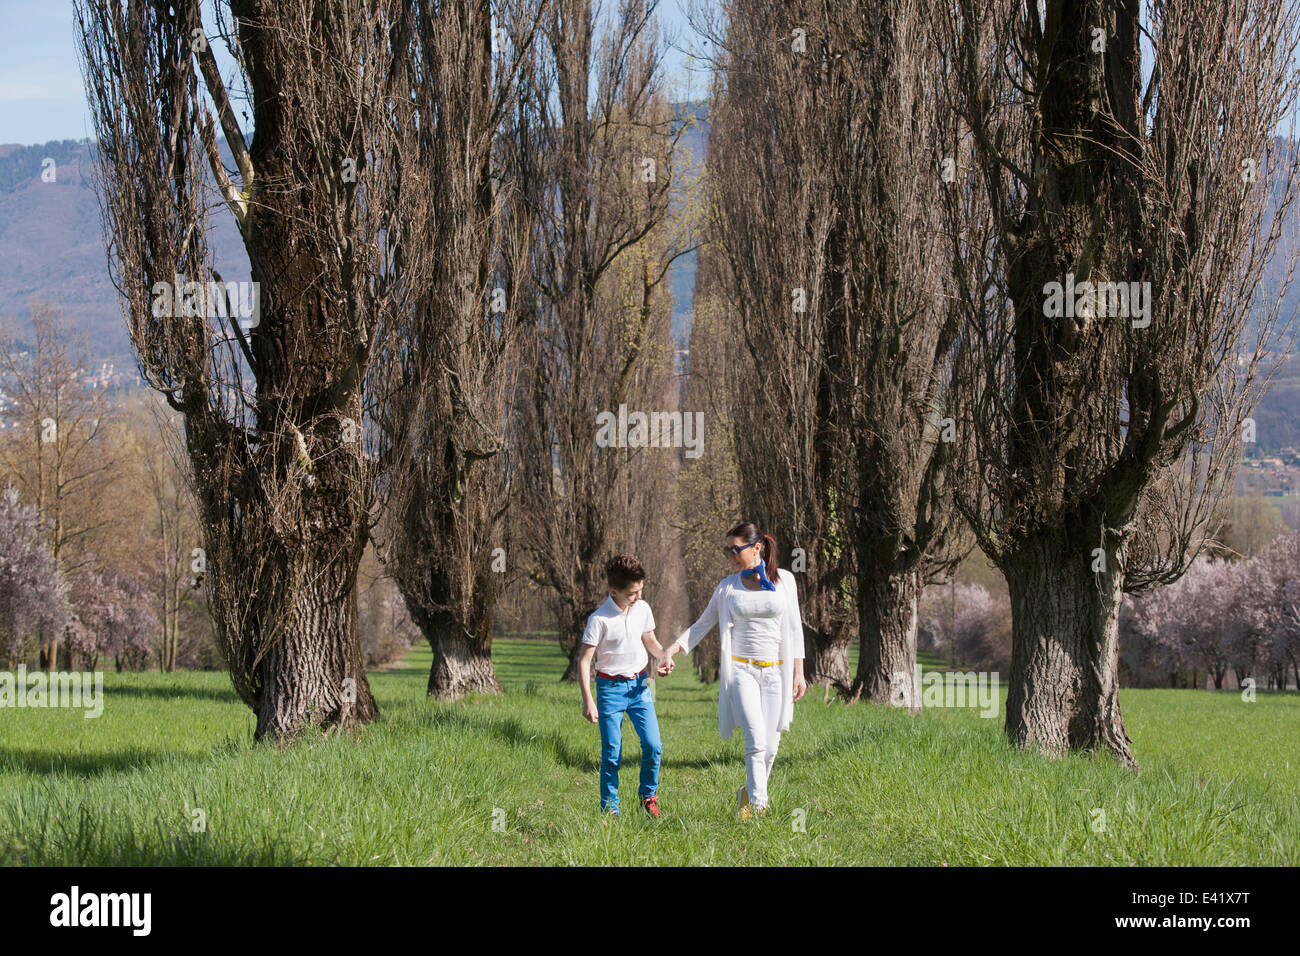 Twelve year old boy and mature mother strolling along tree lined field - Stock Image